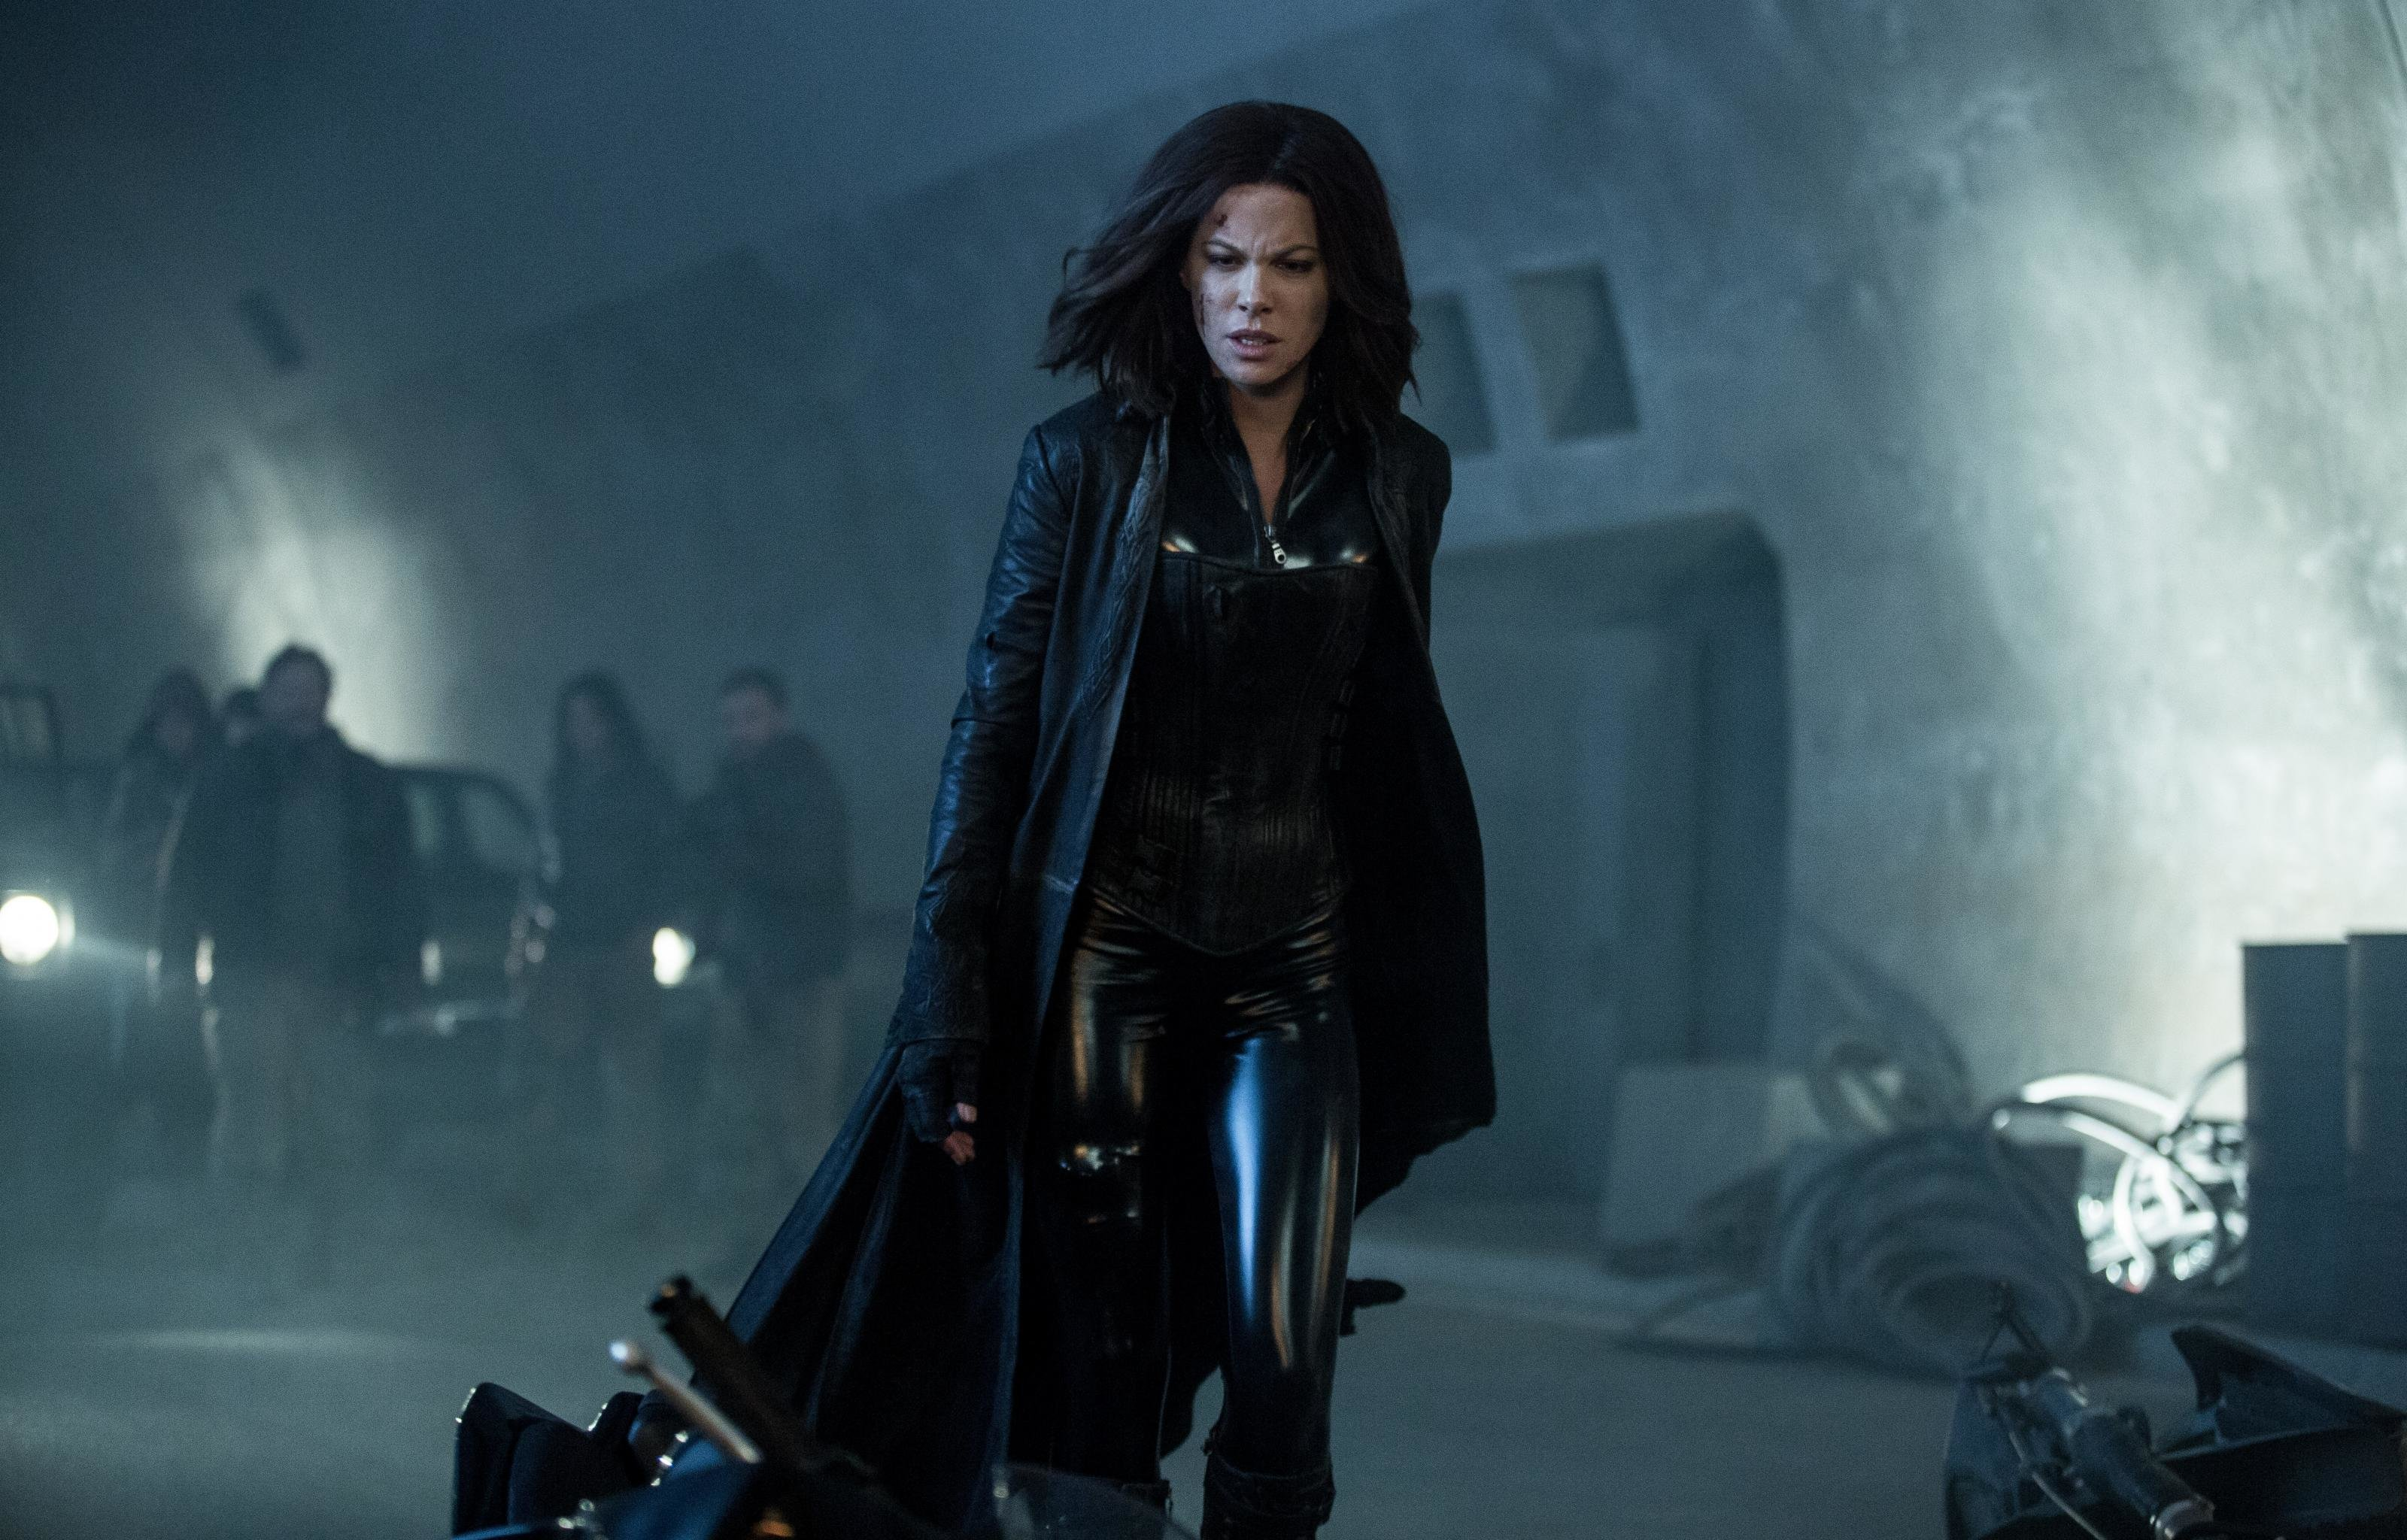 Awesome Underworld: Blood Wars free wallpaper ID:26096 for hd 3200x2048 computer